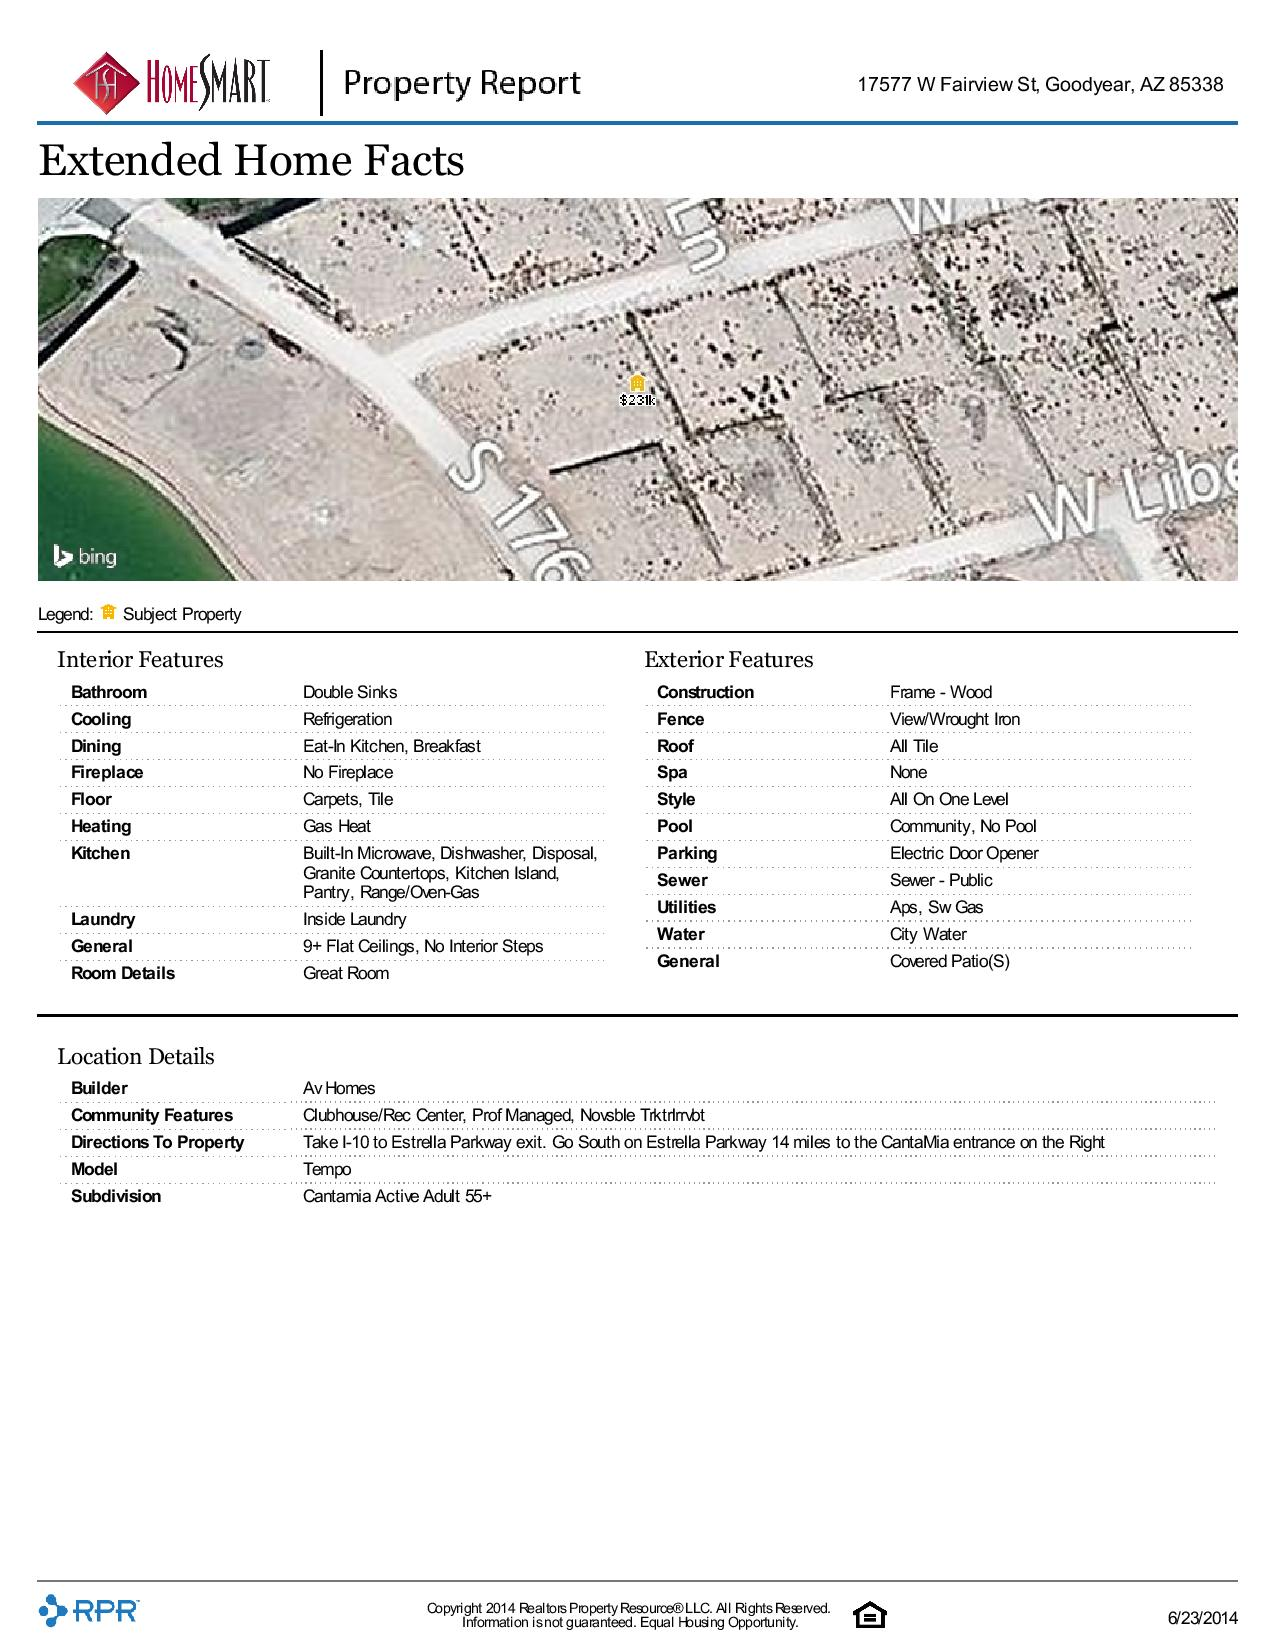 17577-W-Fairview-St-Goodyear-AZ-85338-page-004